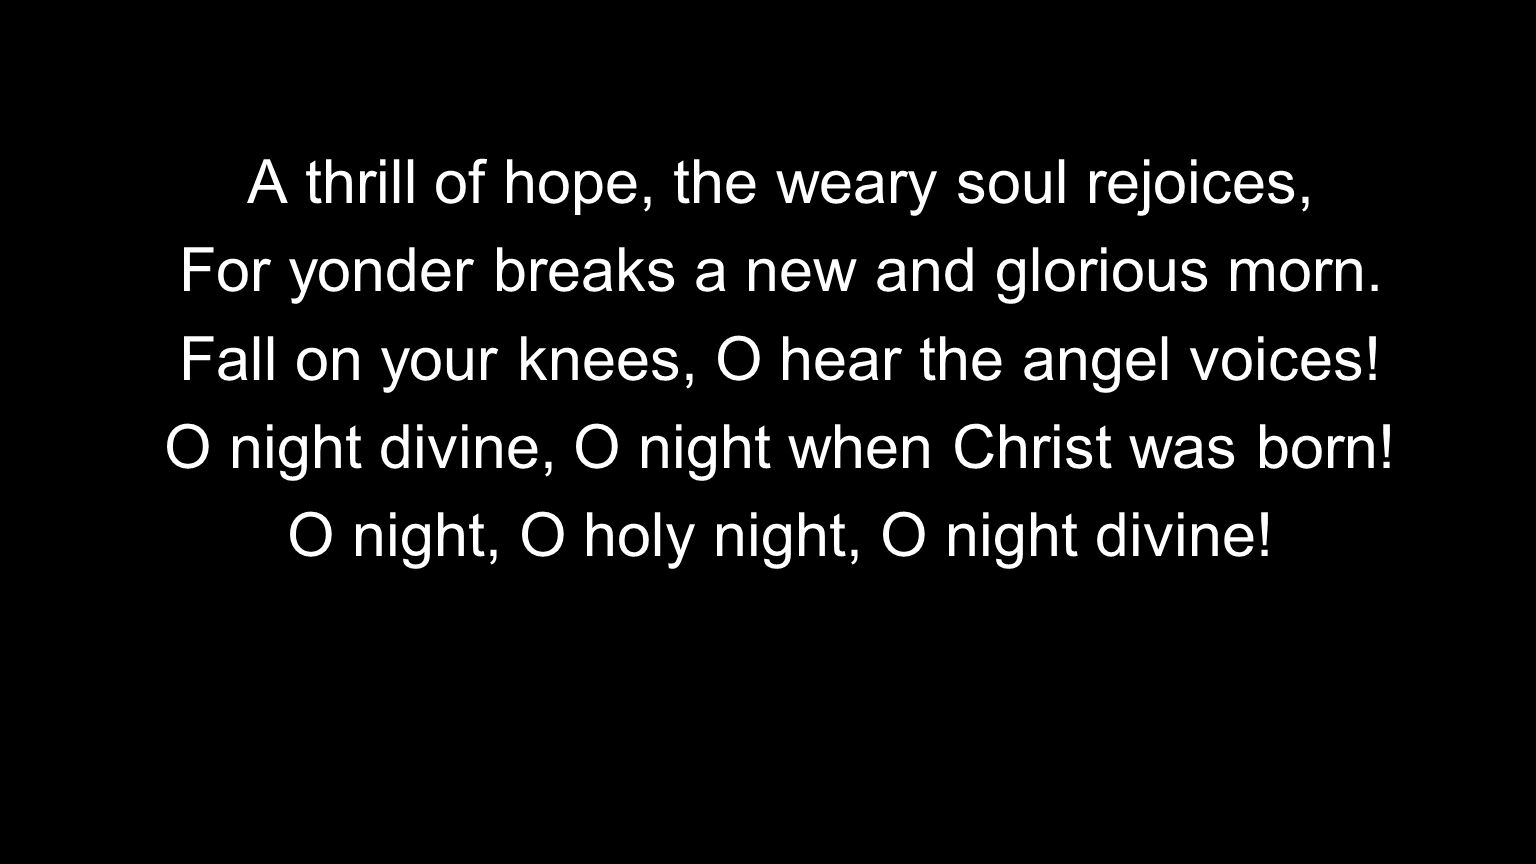 A thrill of hope, the weary soul rejoices, For yonder breaks a new and glorious morn. Fall on your knees, O hear the angel voices! O night divine, O n